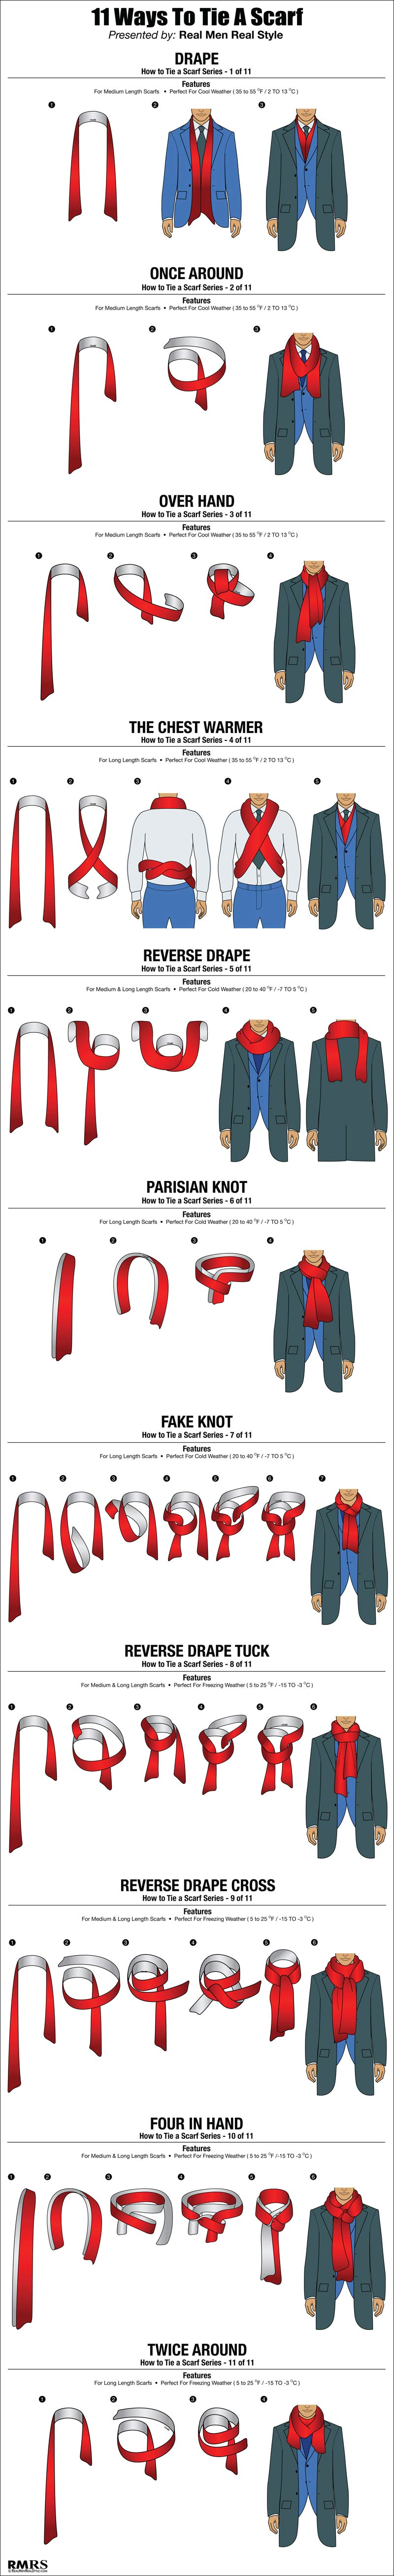 11 ways to tie a scarf for men